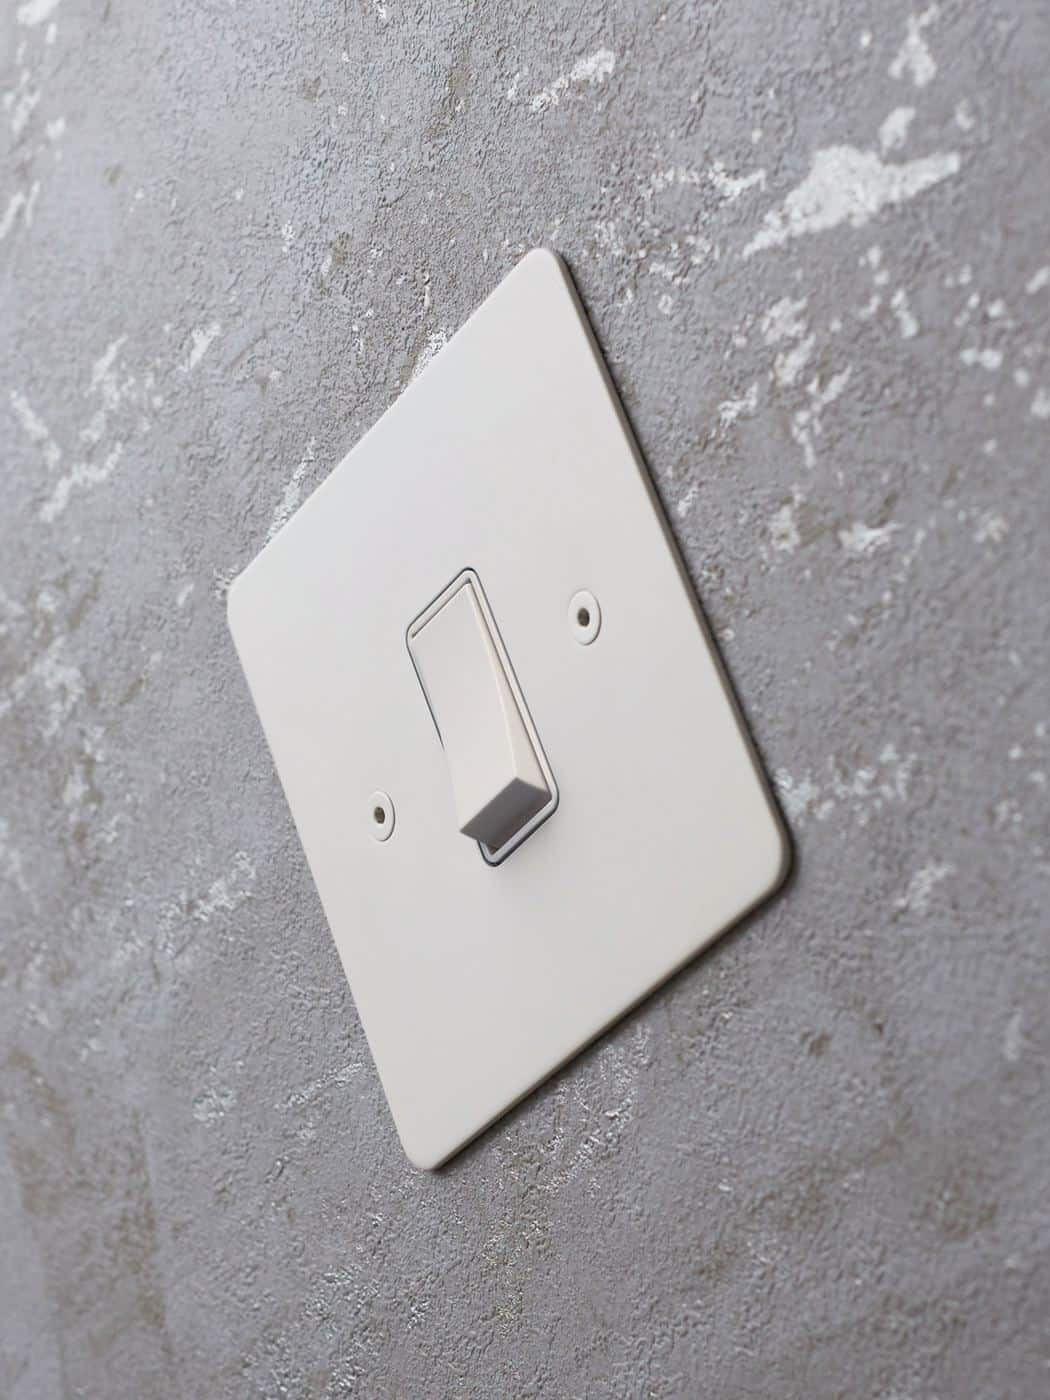 Designer Electrical Wiring Accessories from Focus SB  - light switch in matt white